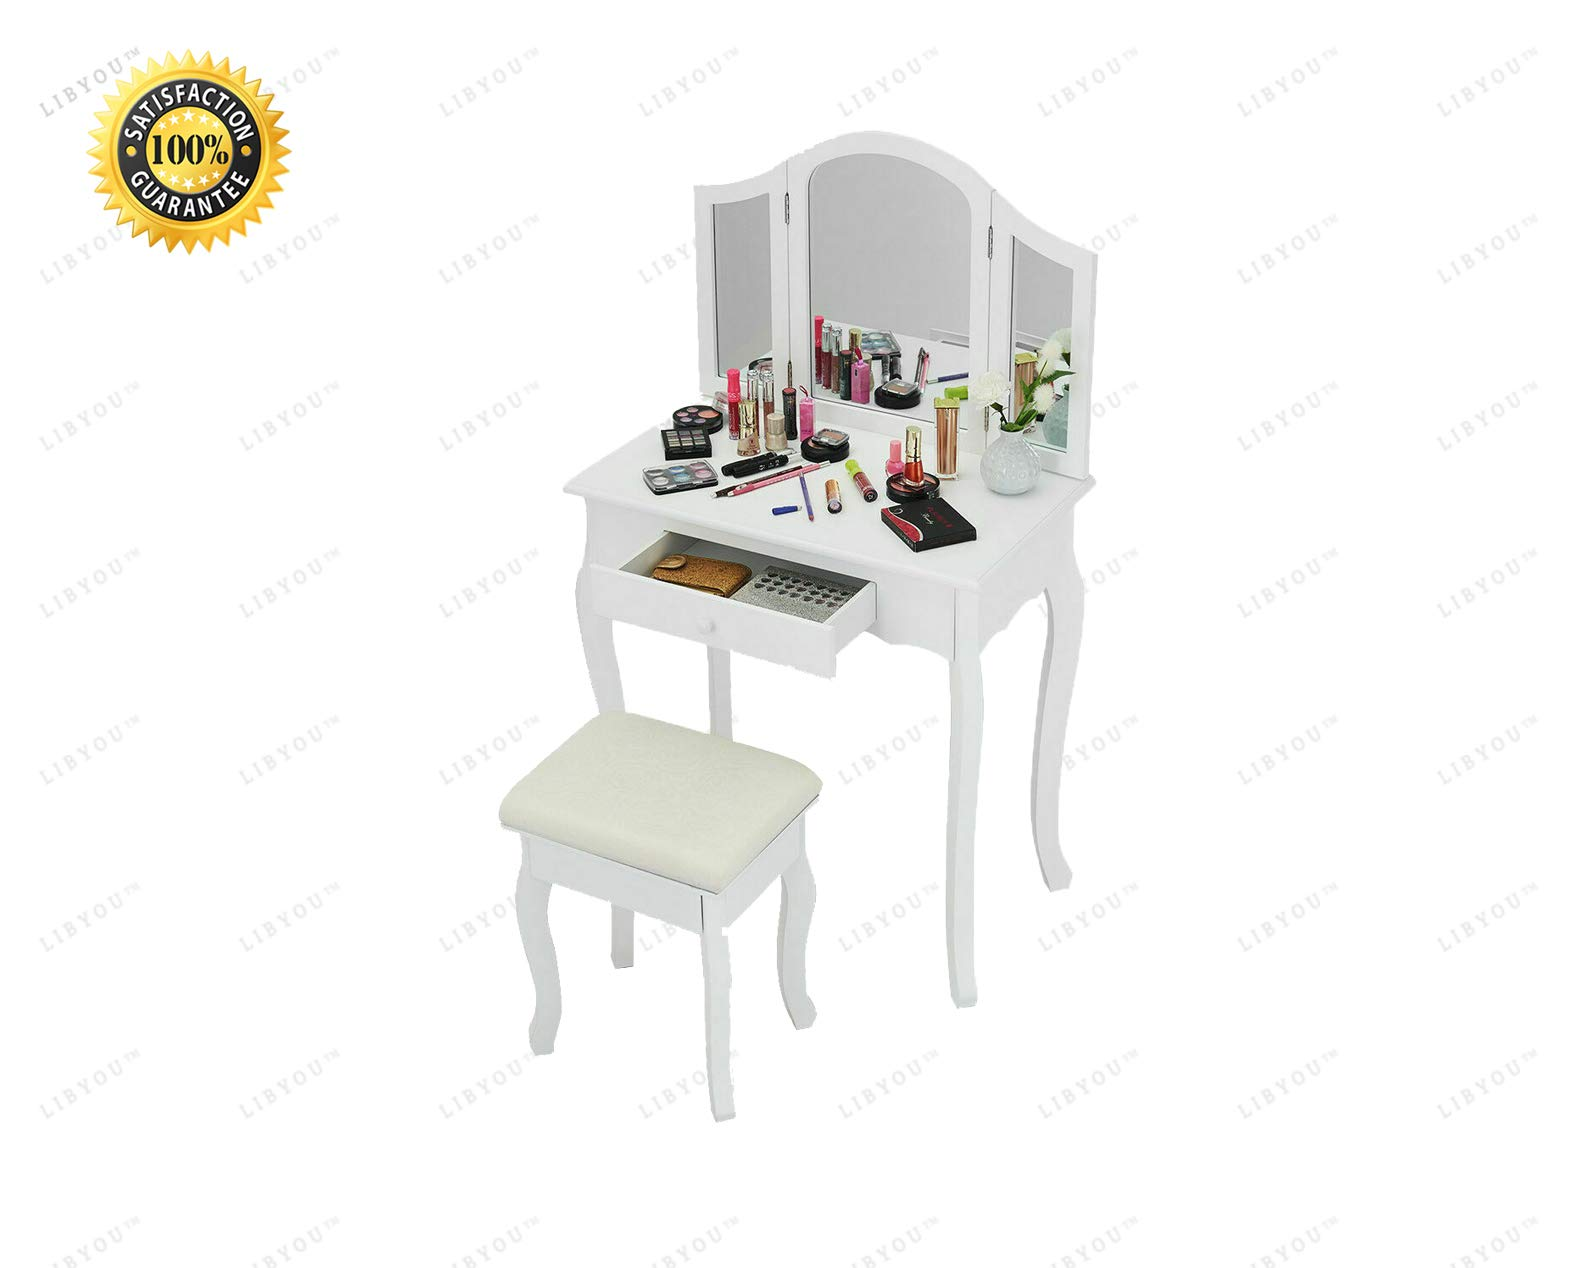 LIBYOU__Dressing up Table,Vanity Makeup Table and Stool Set,Tri Folding Mirror Vanity Makeup Table Set,Home Vanity Desk with Drawers,Makeup Table Stool Set,Makeup Dressing Table Set